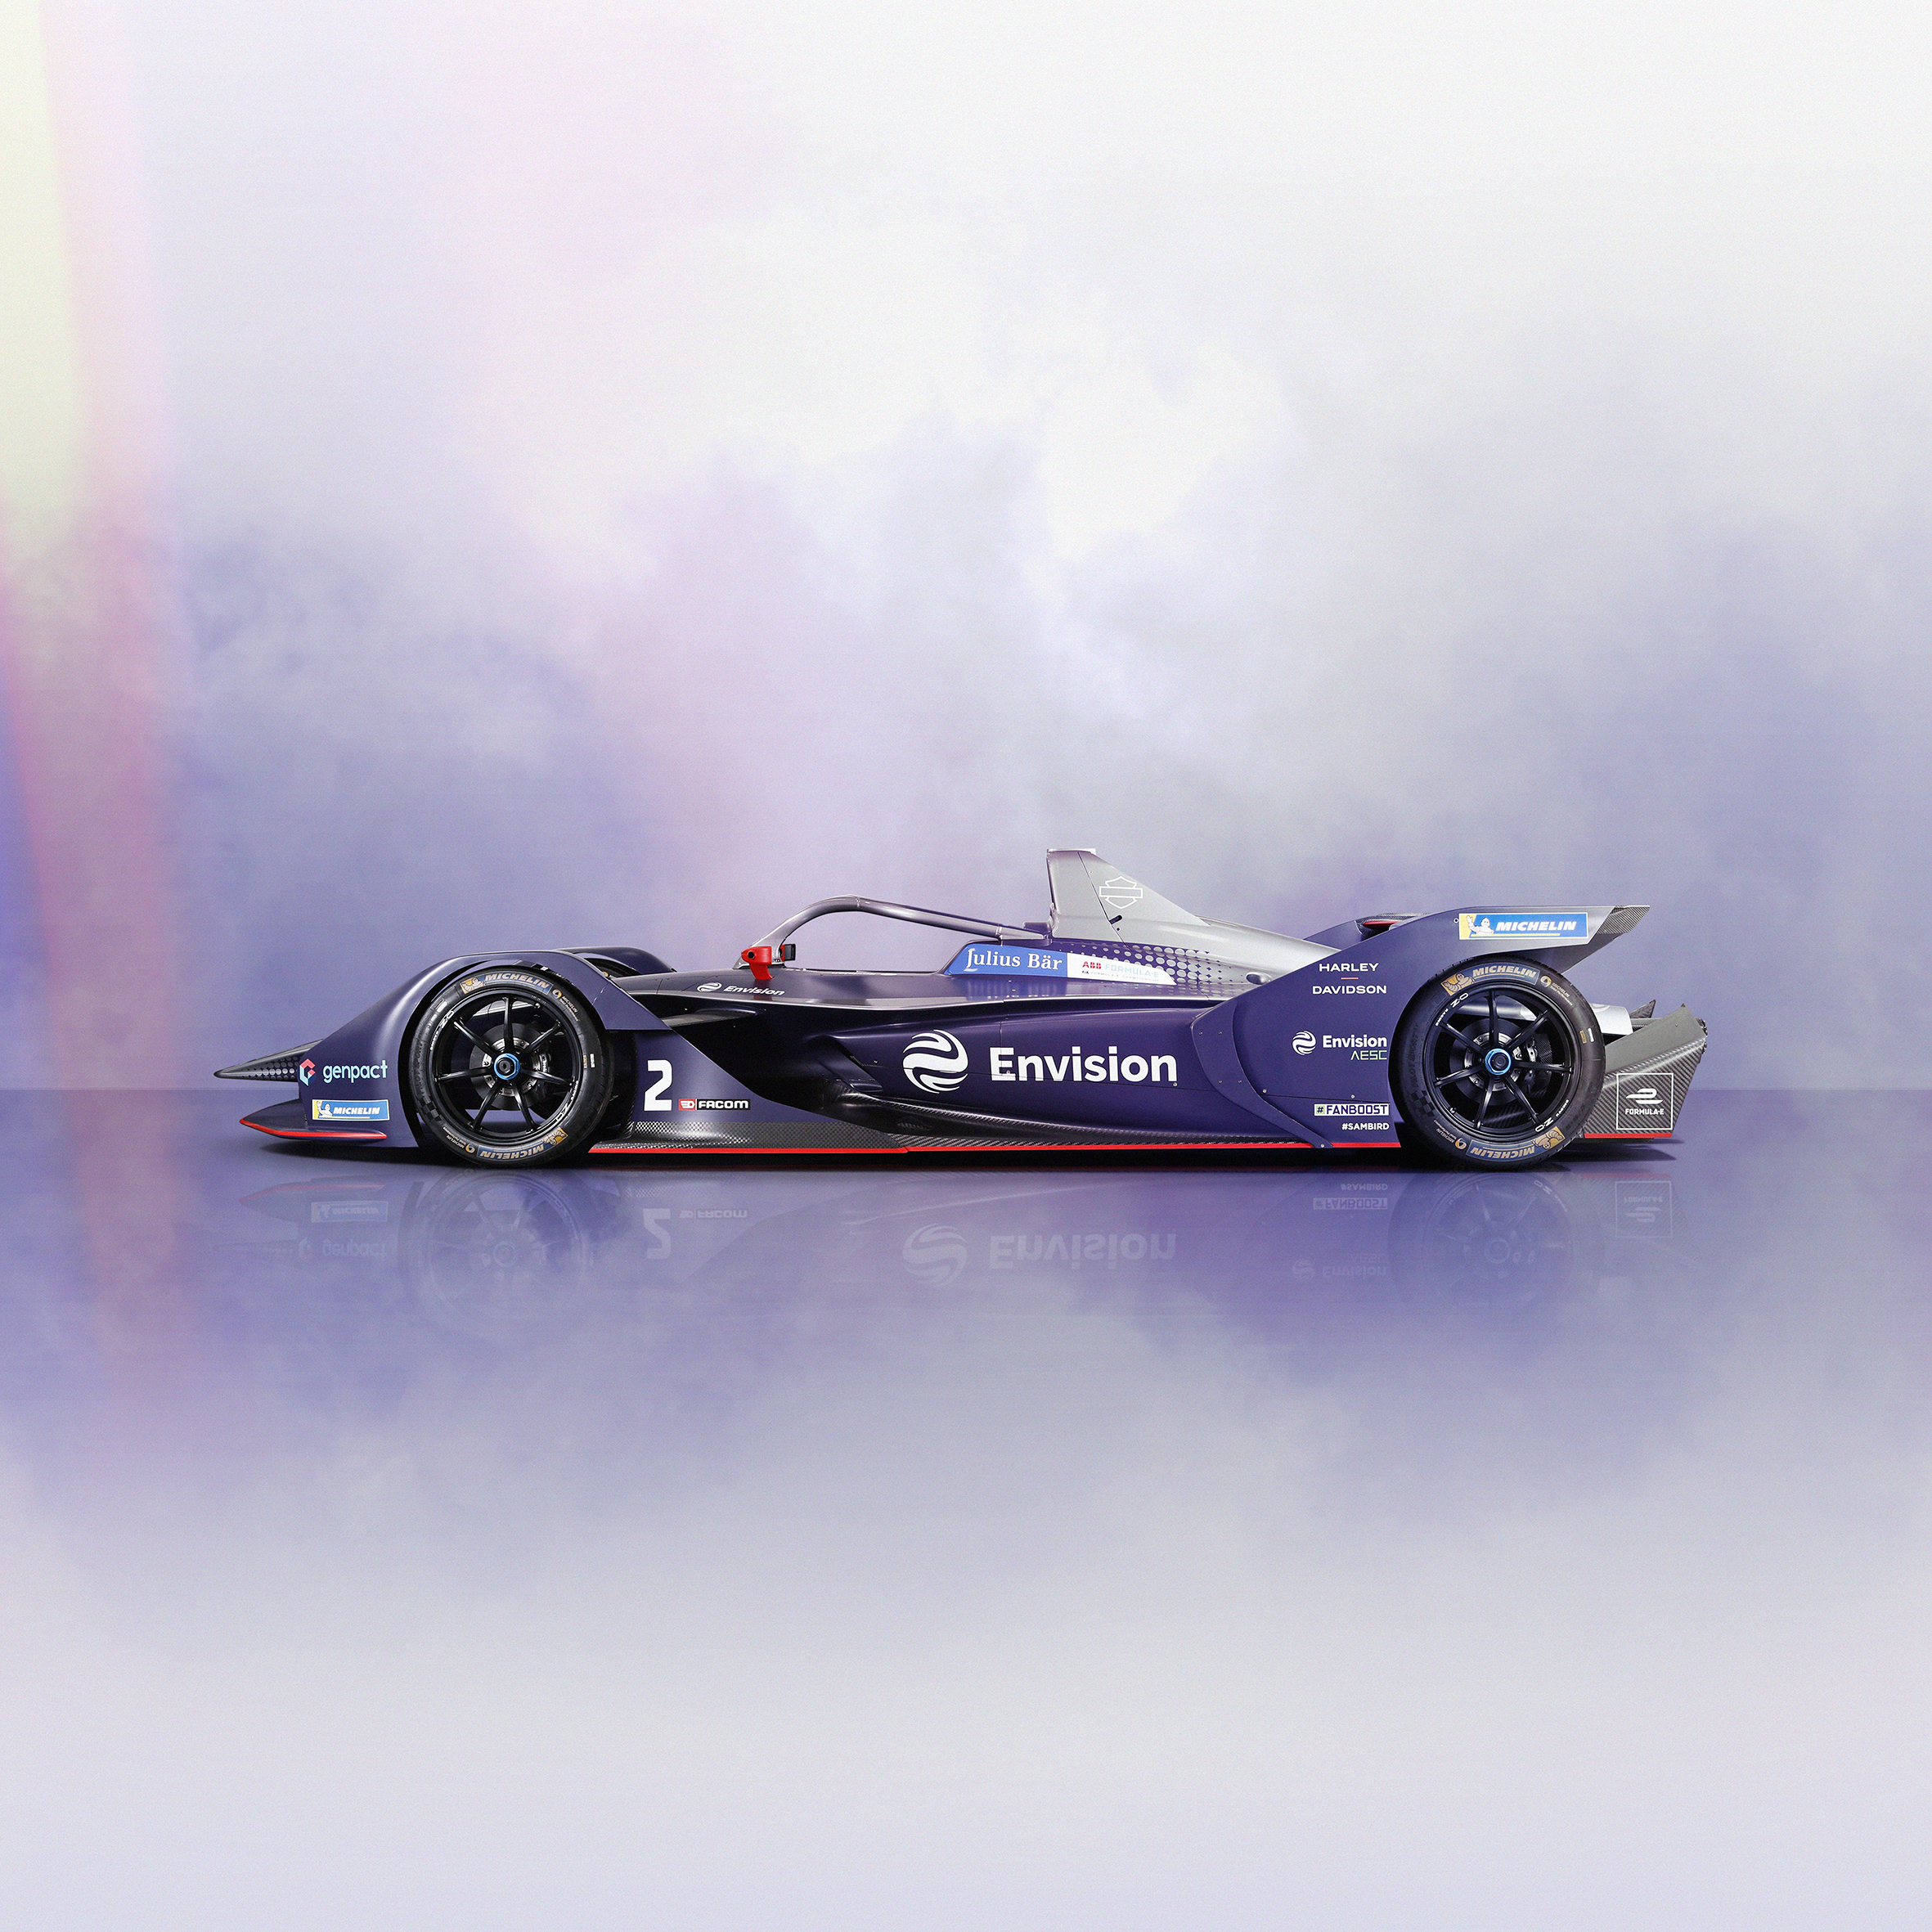 Virgin Formula E Launch